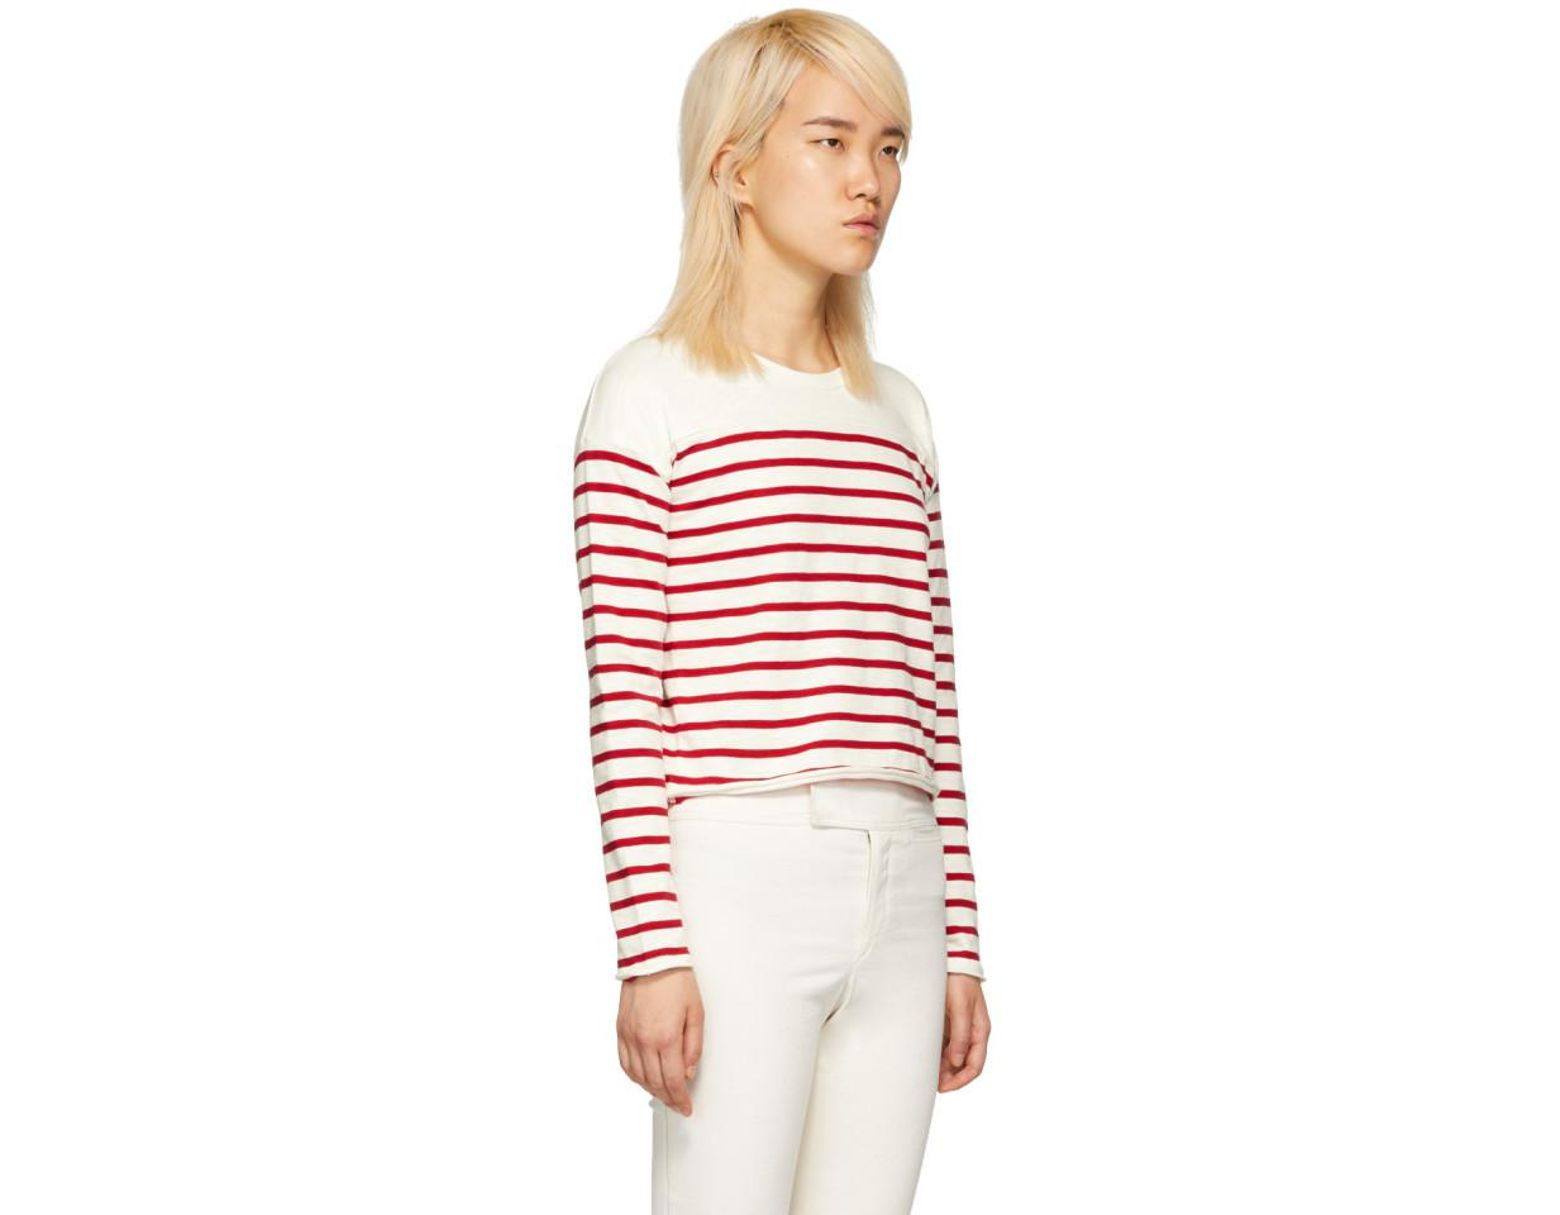 34871a0a1f Rag & Bone White And Red Striped Halsey Long Sleeve T-shirt in Red - Save  58% - Lyst